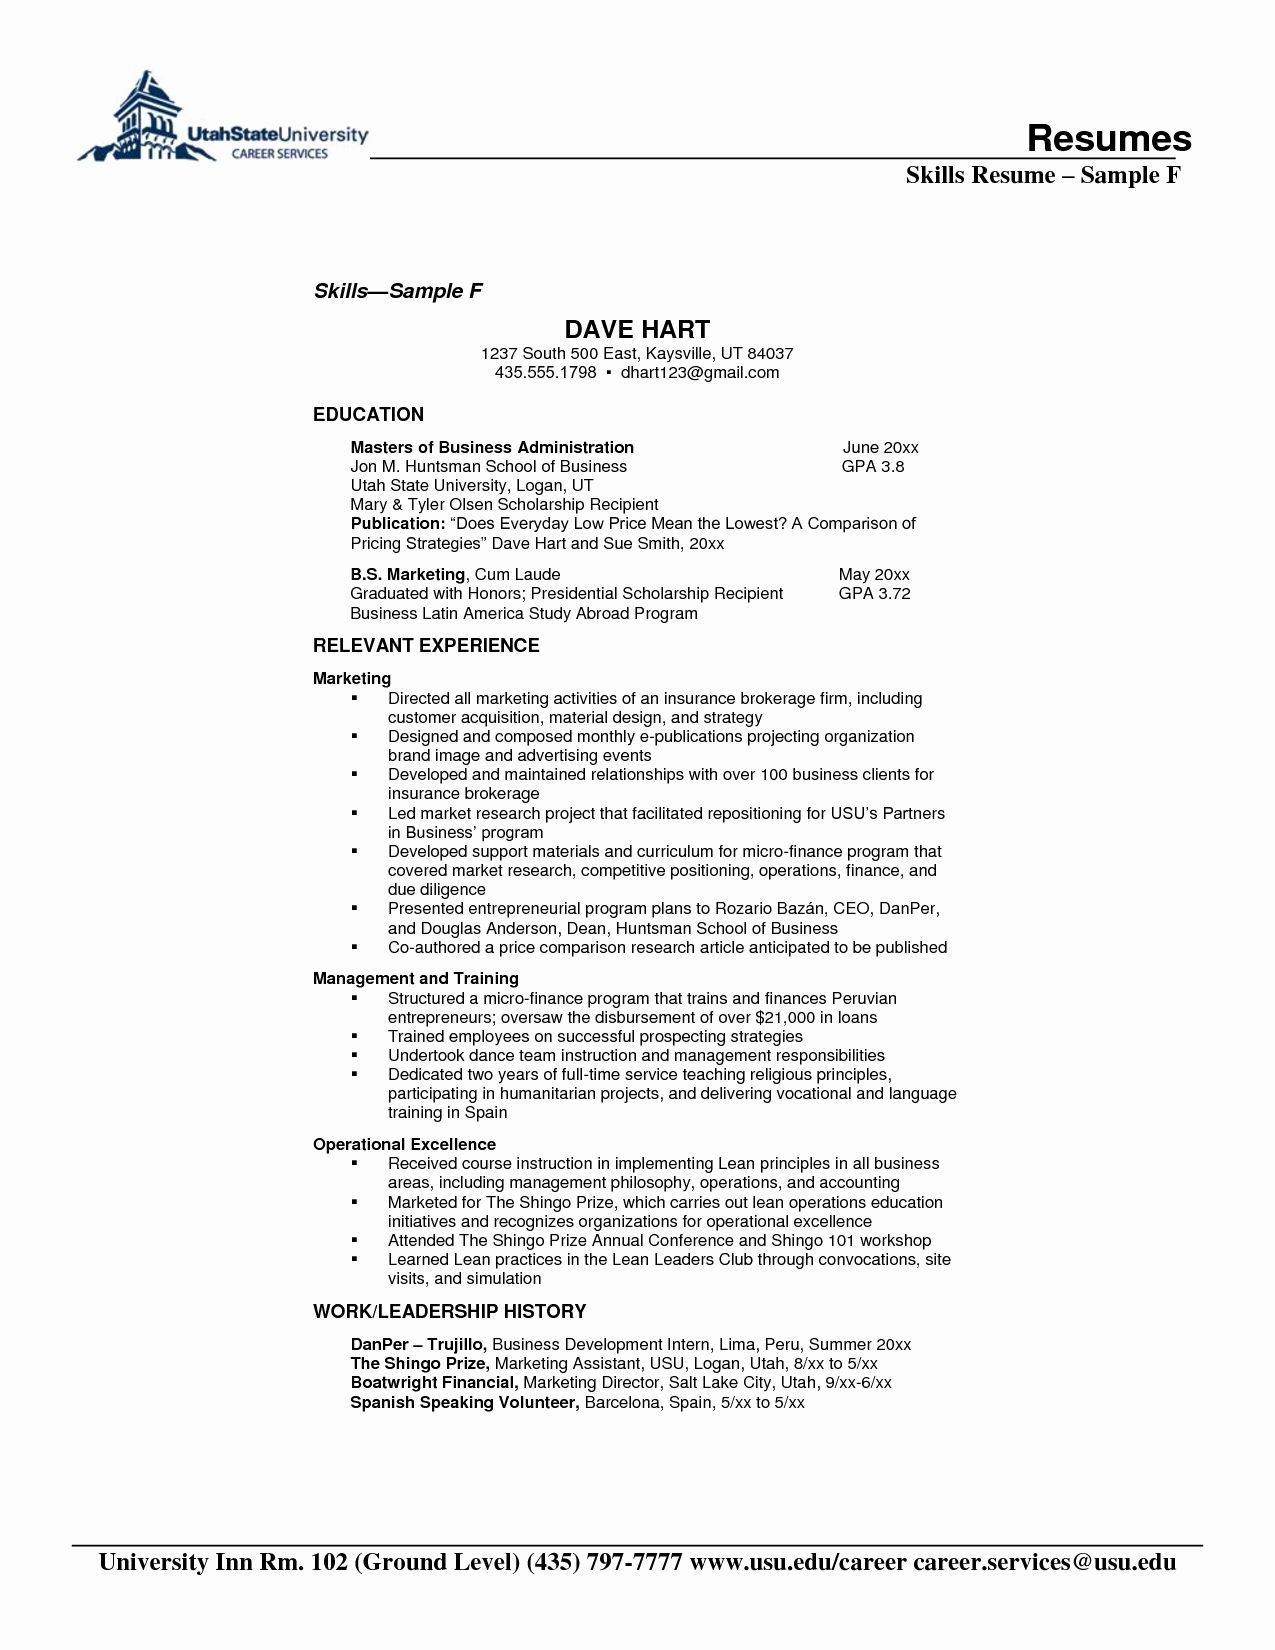 For 5 Years Experience In Operations Resume Skills Resume